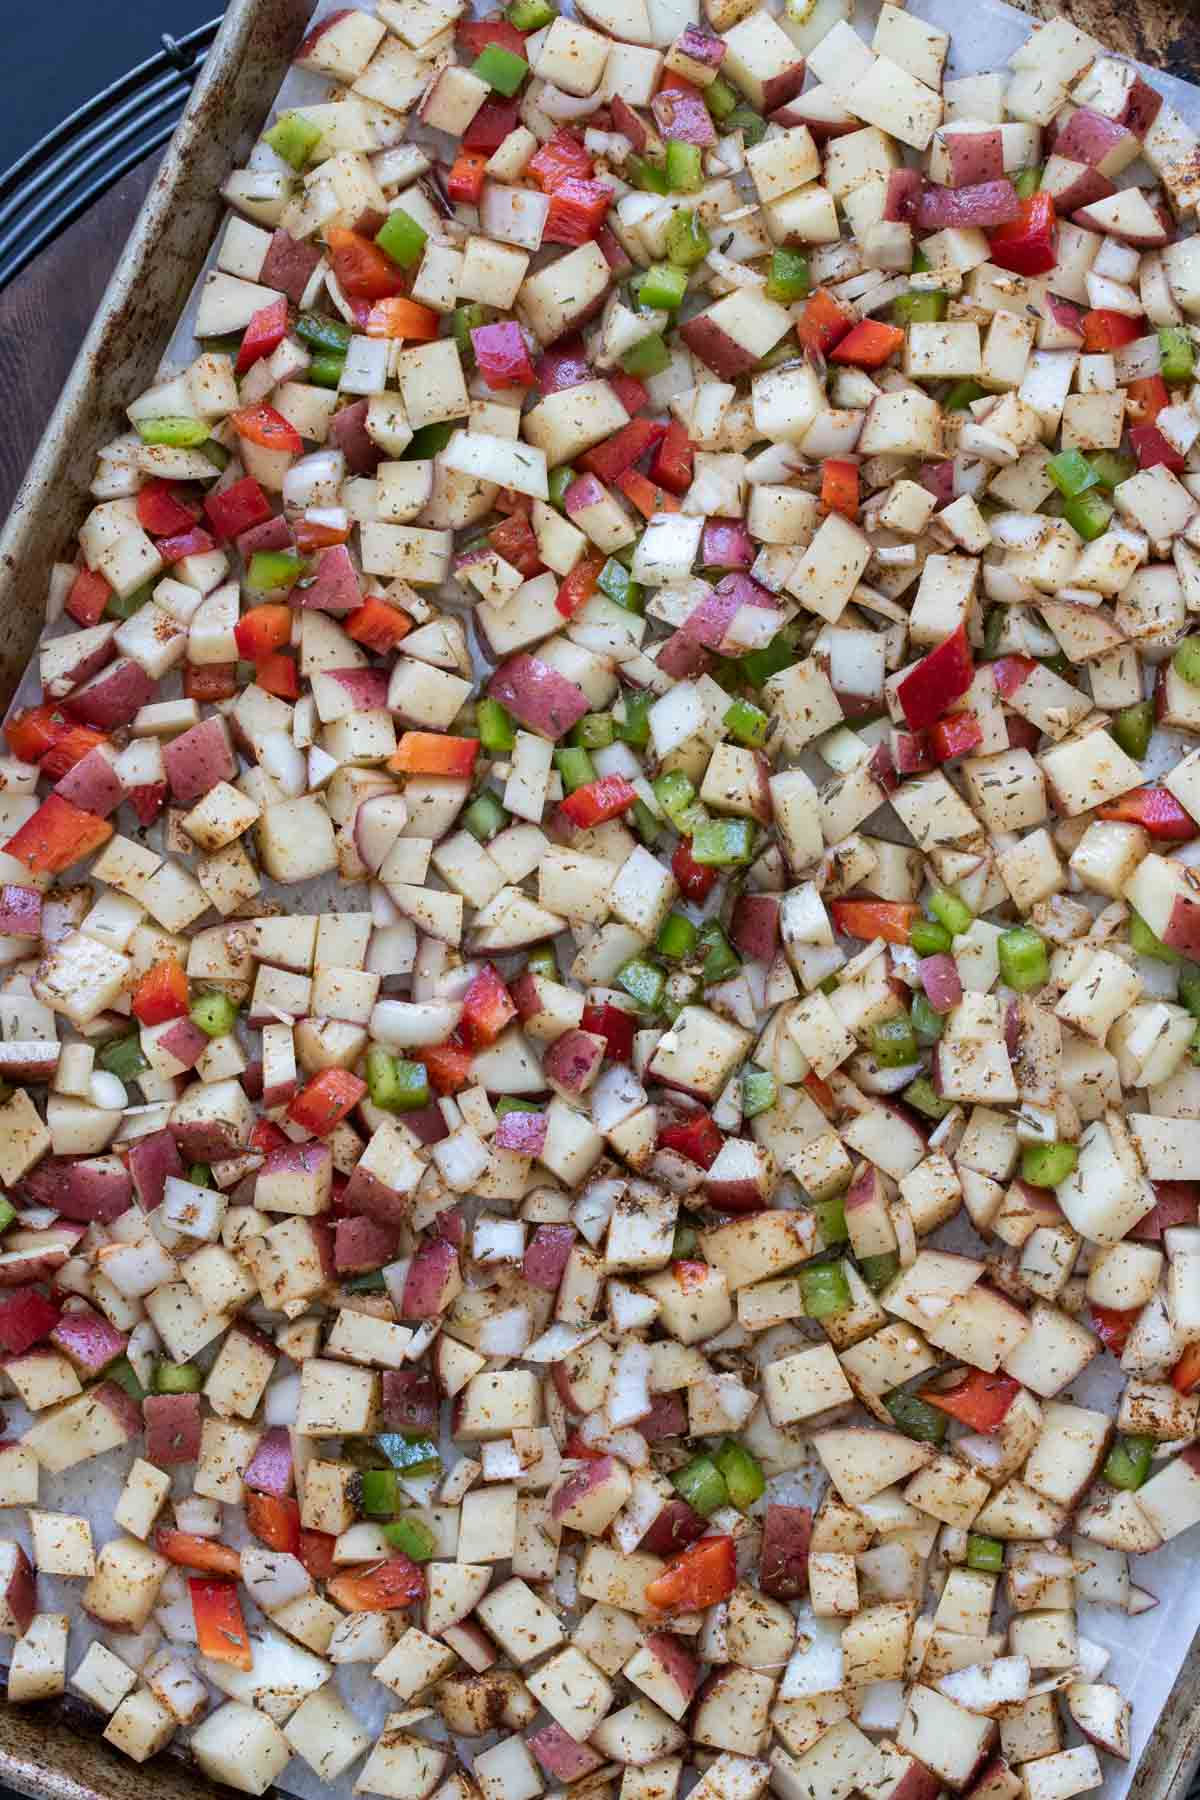 Chopped potatoes, onions and peppers on a baking sheet